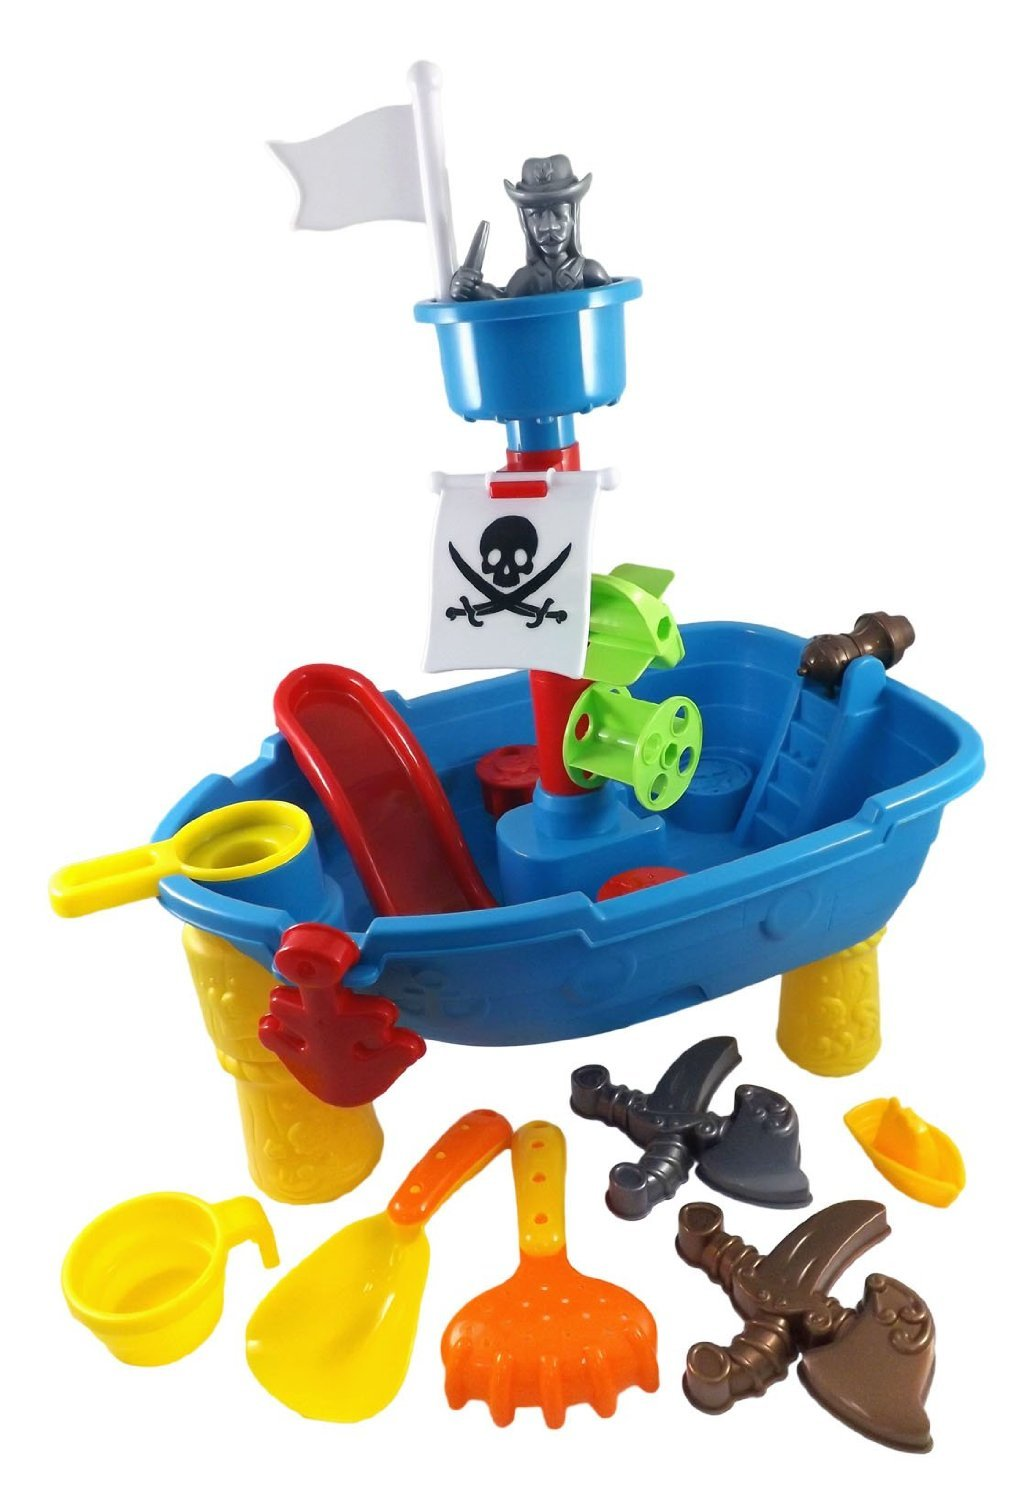 Amazon.com: Pirate Ship Beach Sand And Water Play Table For Kids With  Shovel, Rake, Sand Wheel, Mini Boat, Shape Molds U0026 More: Toys U0026 Games